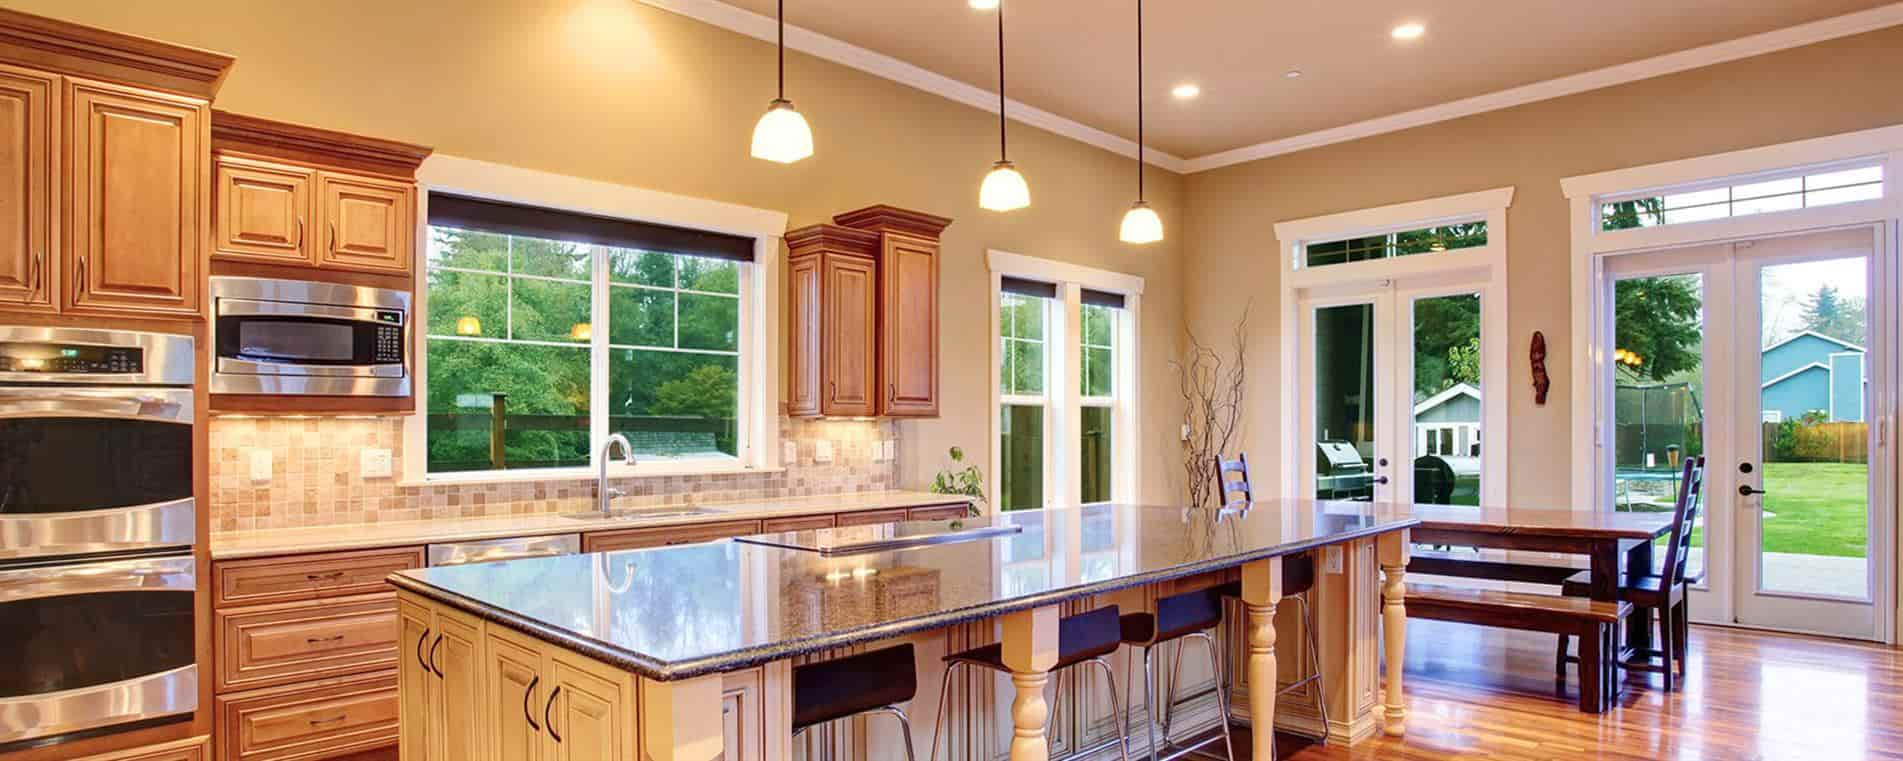 Professional House Painters In Raleigh Nc